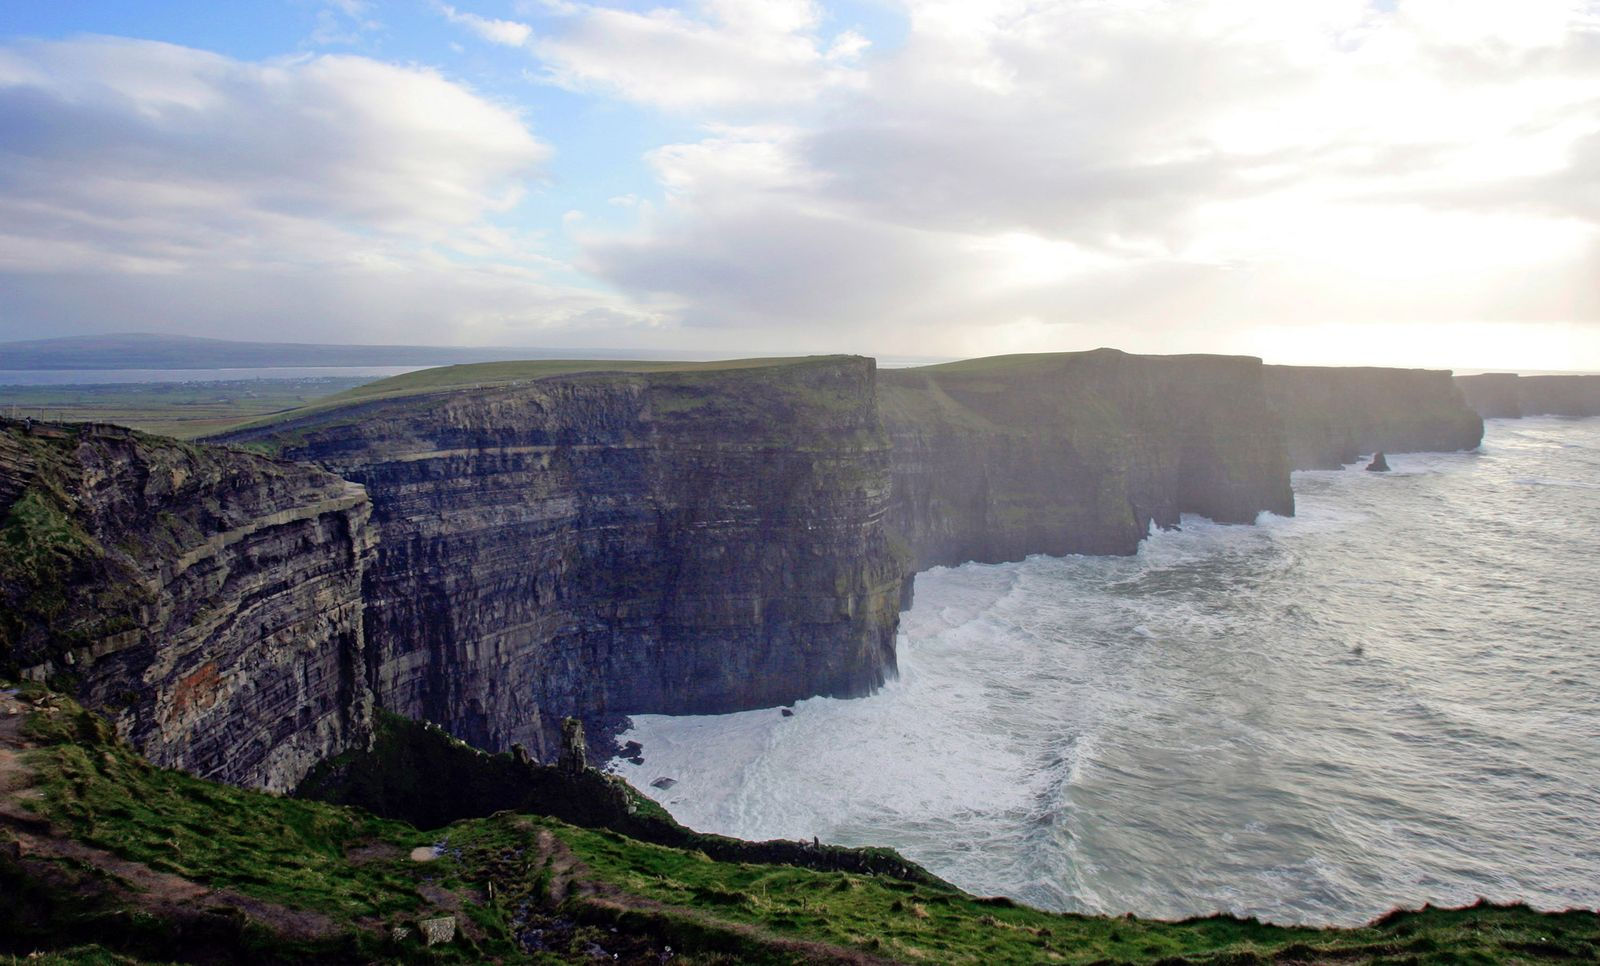 Irland / Cliffs of Moher